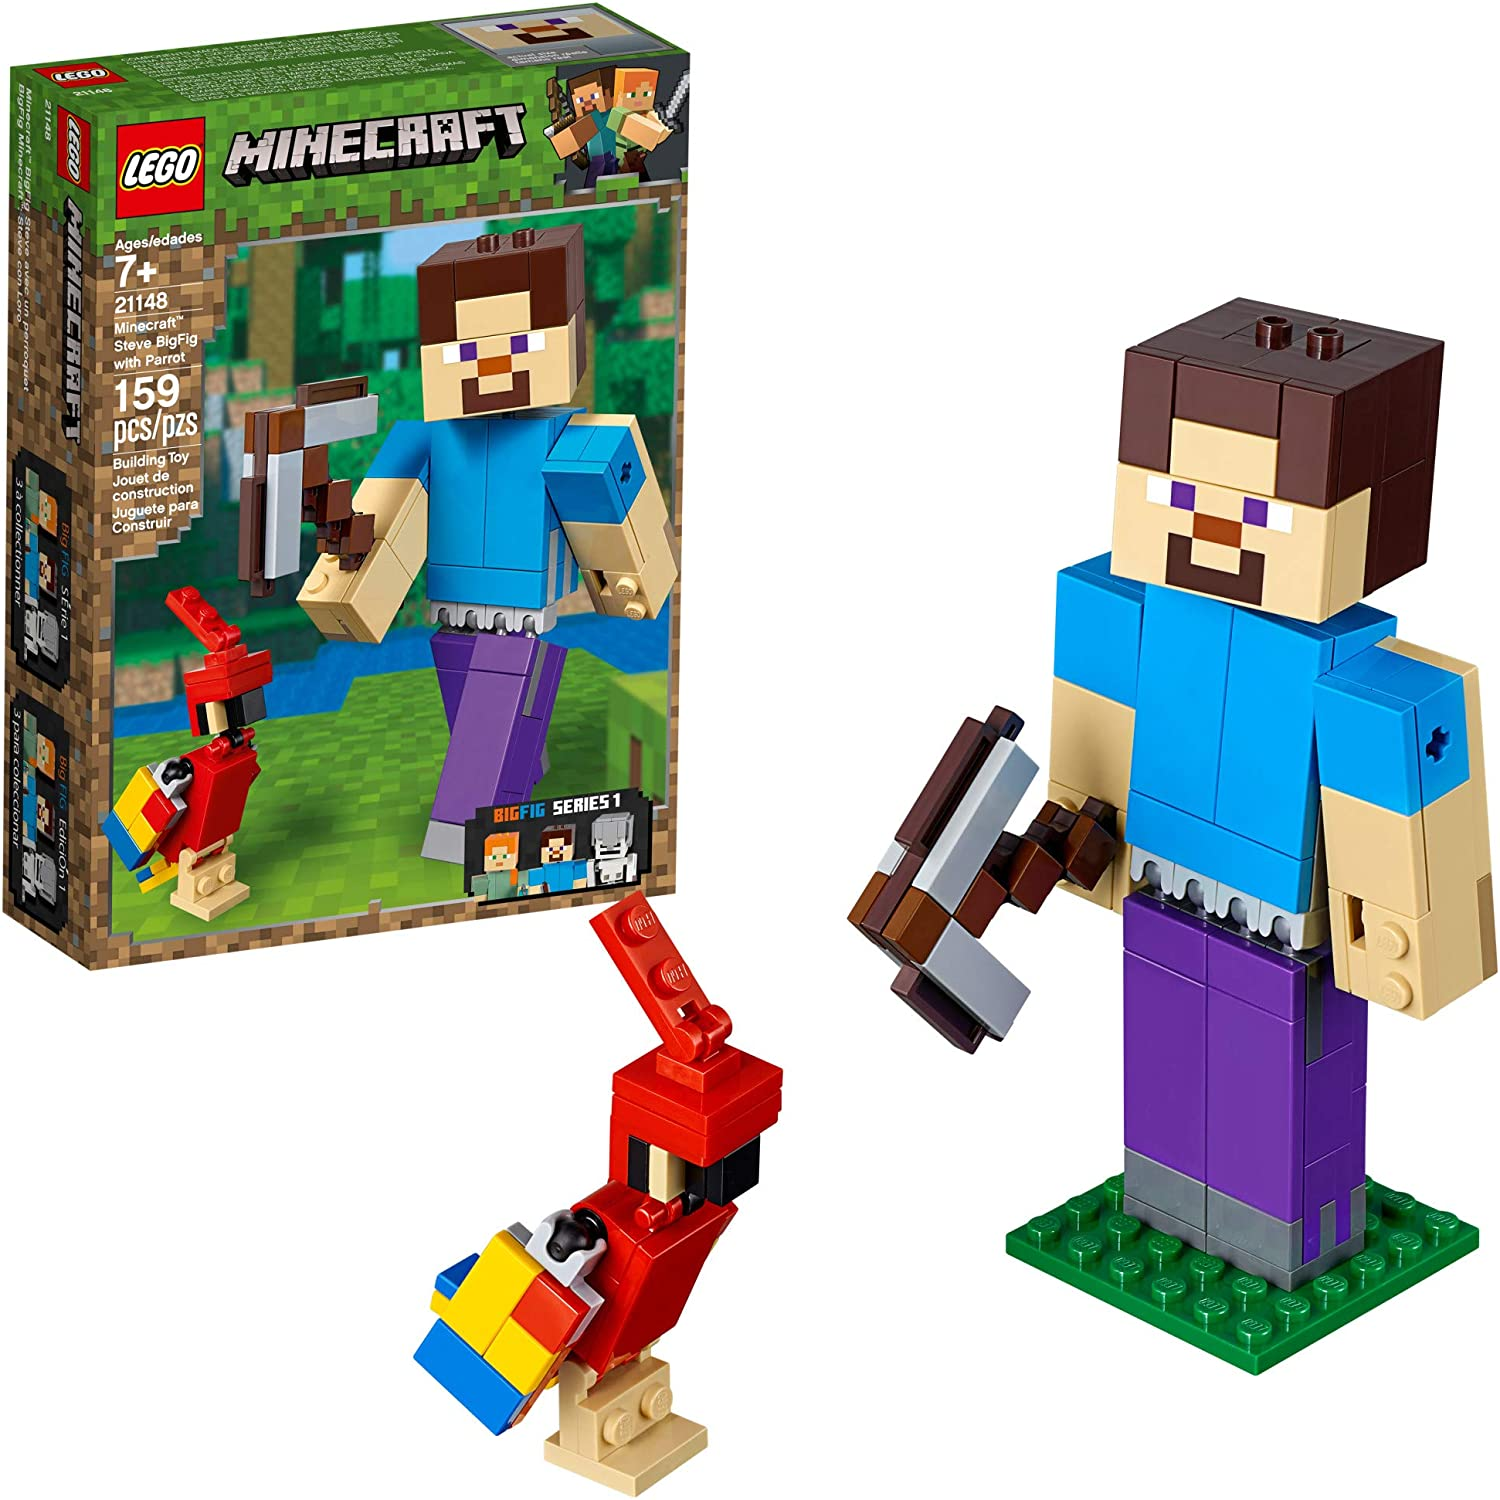 Lego Minecraft Minifigure Lot of 2 Steve and Alex w//Diamond Axe